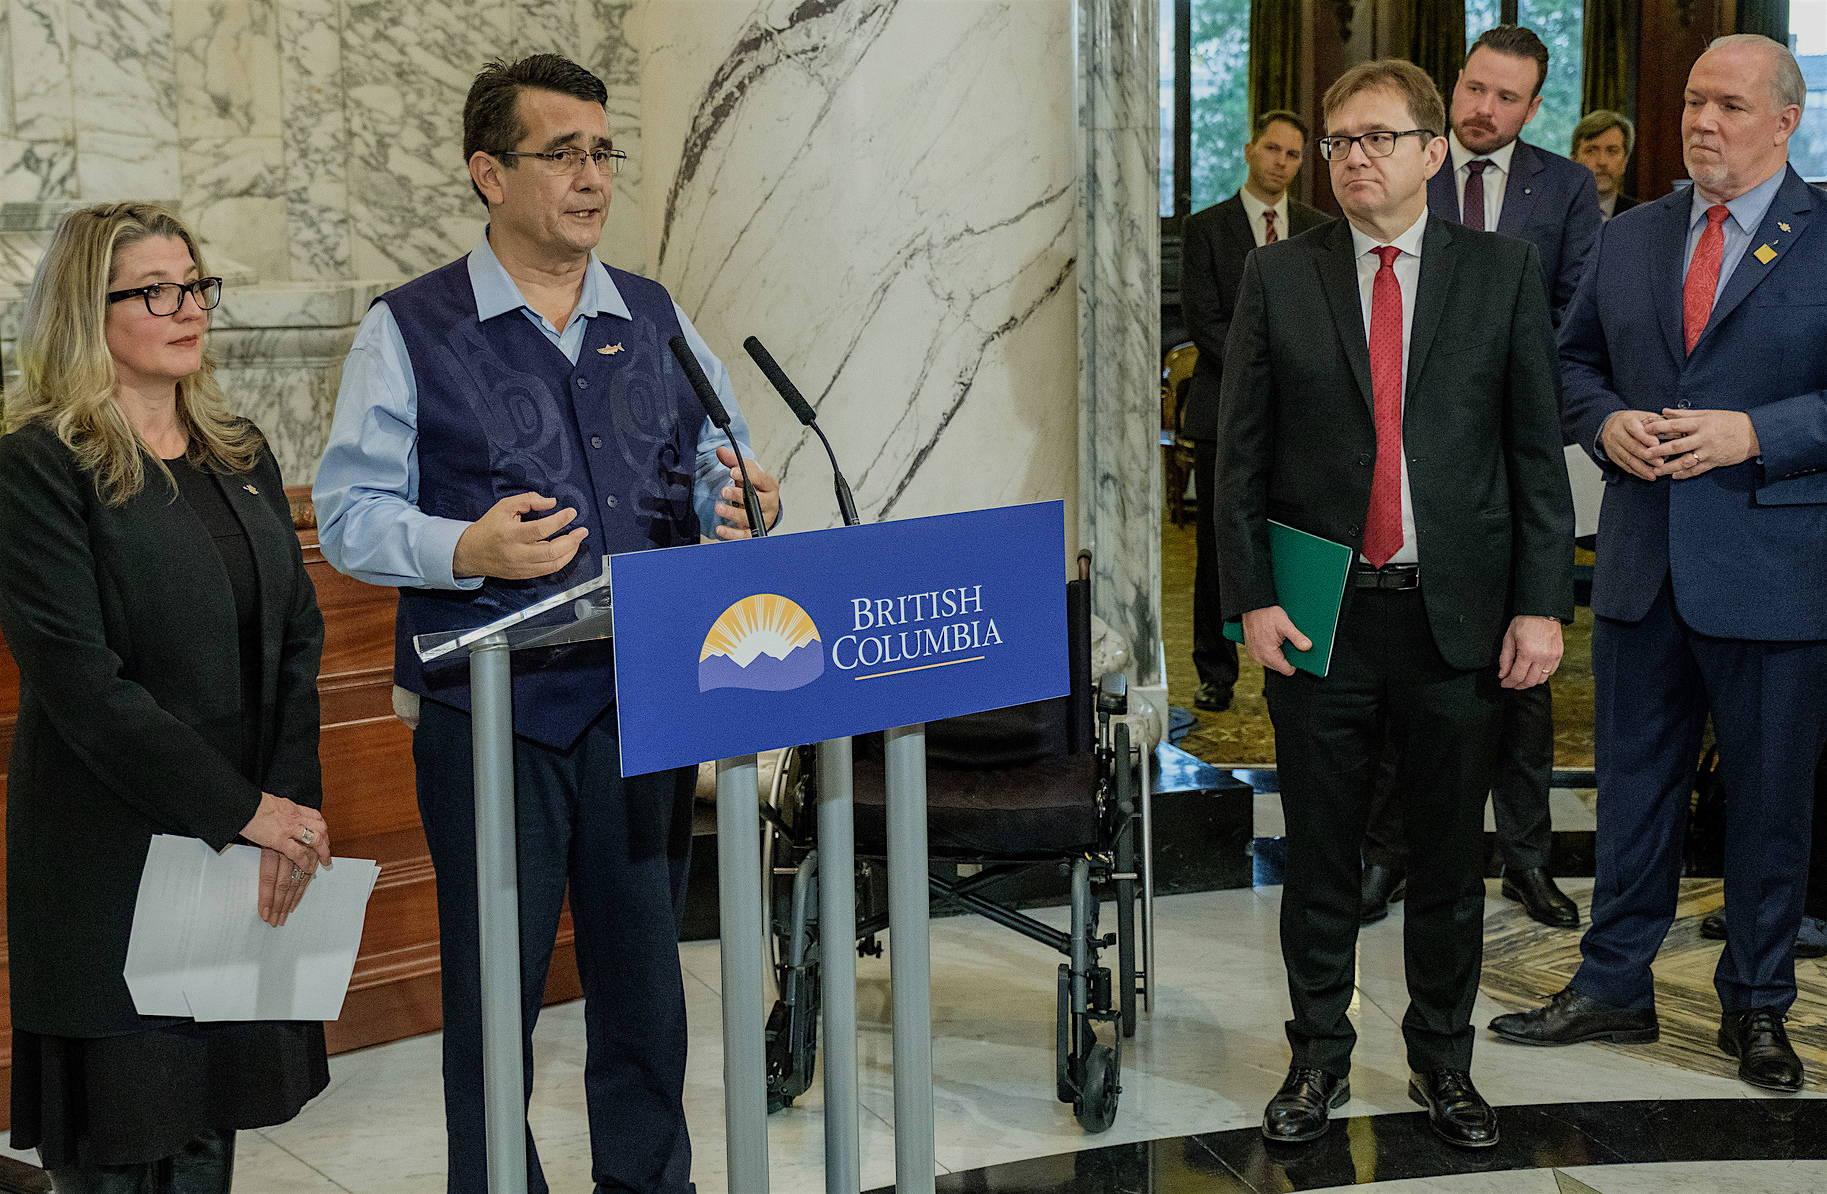 B.C. Agriculture Minister Lana Popham, Union of B.C. Indian Chiefs vice-president Chief Bob Chamberlin, Fisheries and Oceans Minister Jonathan Wilkinson and Premier John Horgan announce closure of coastal salmon farms at the B.C. legislature, Dec. 14, 2018. (B.C. government photo)